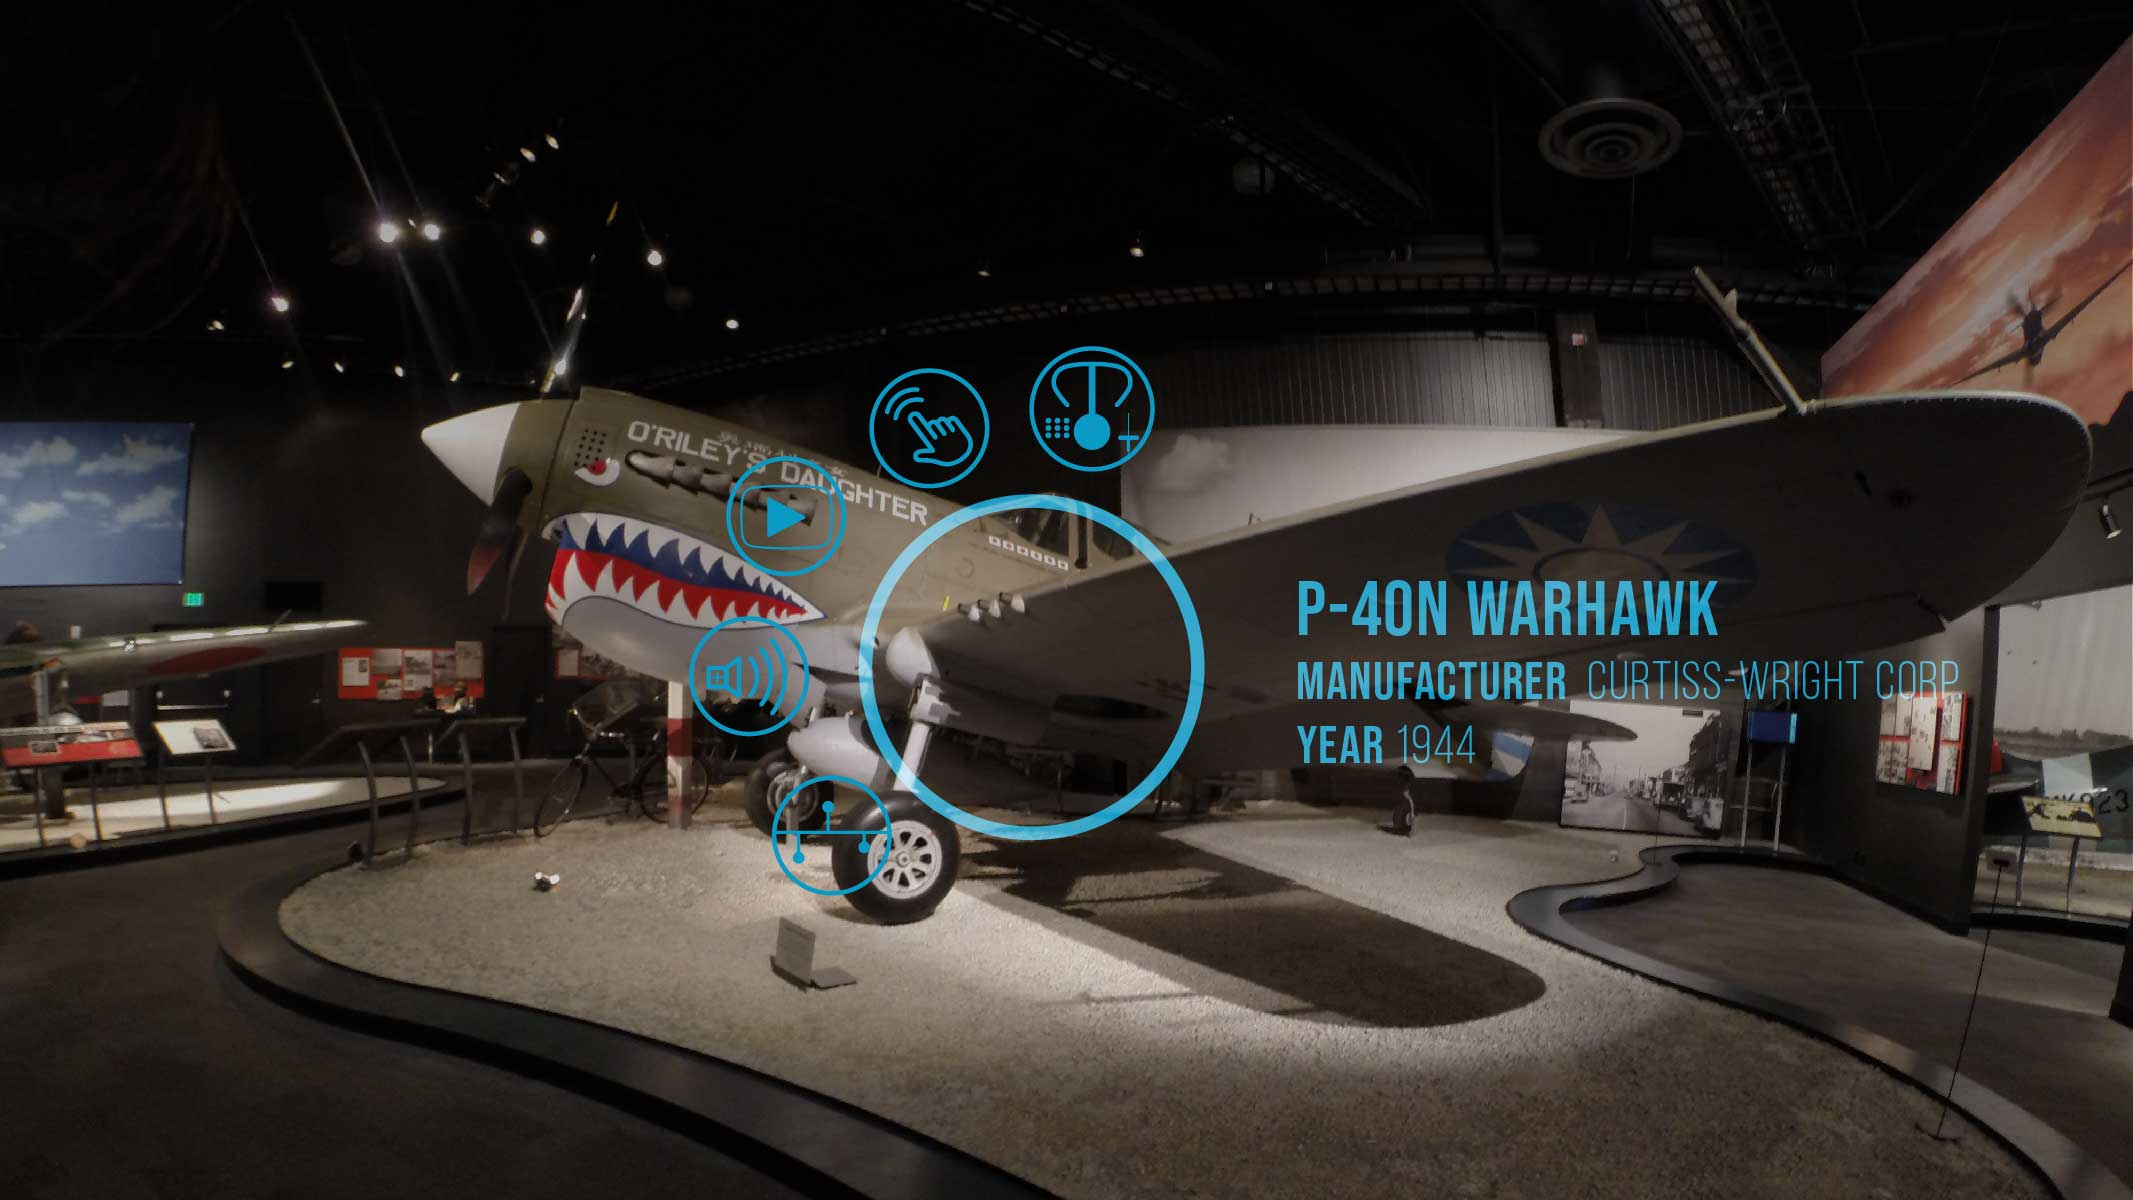 a mock-up image of the hover state of the FARTHER AR exhibit interface overlayed on an exhibit at the Museum of Flight